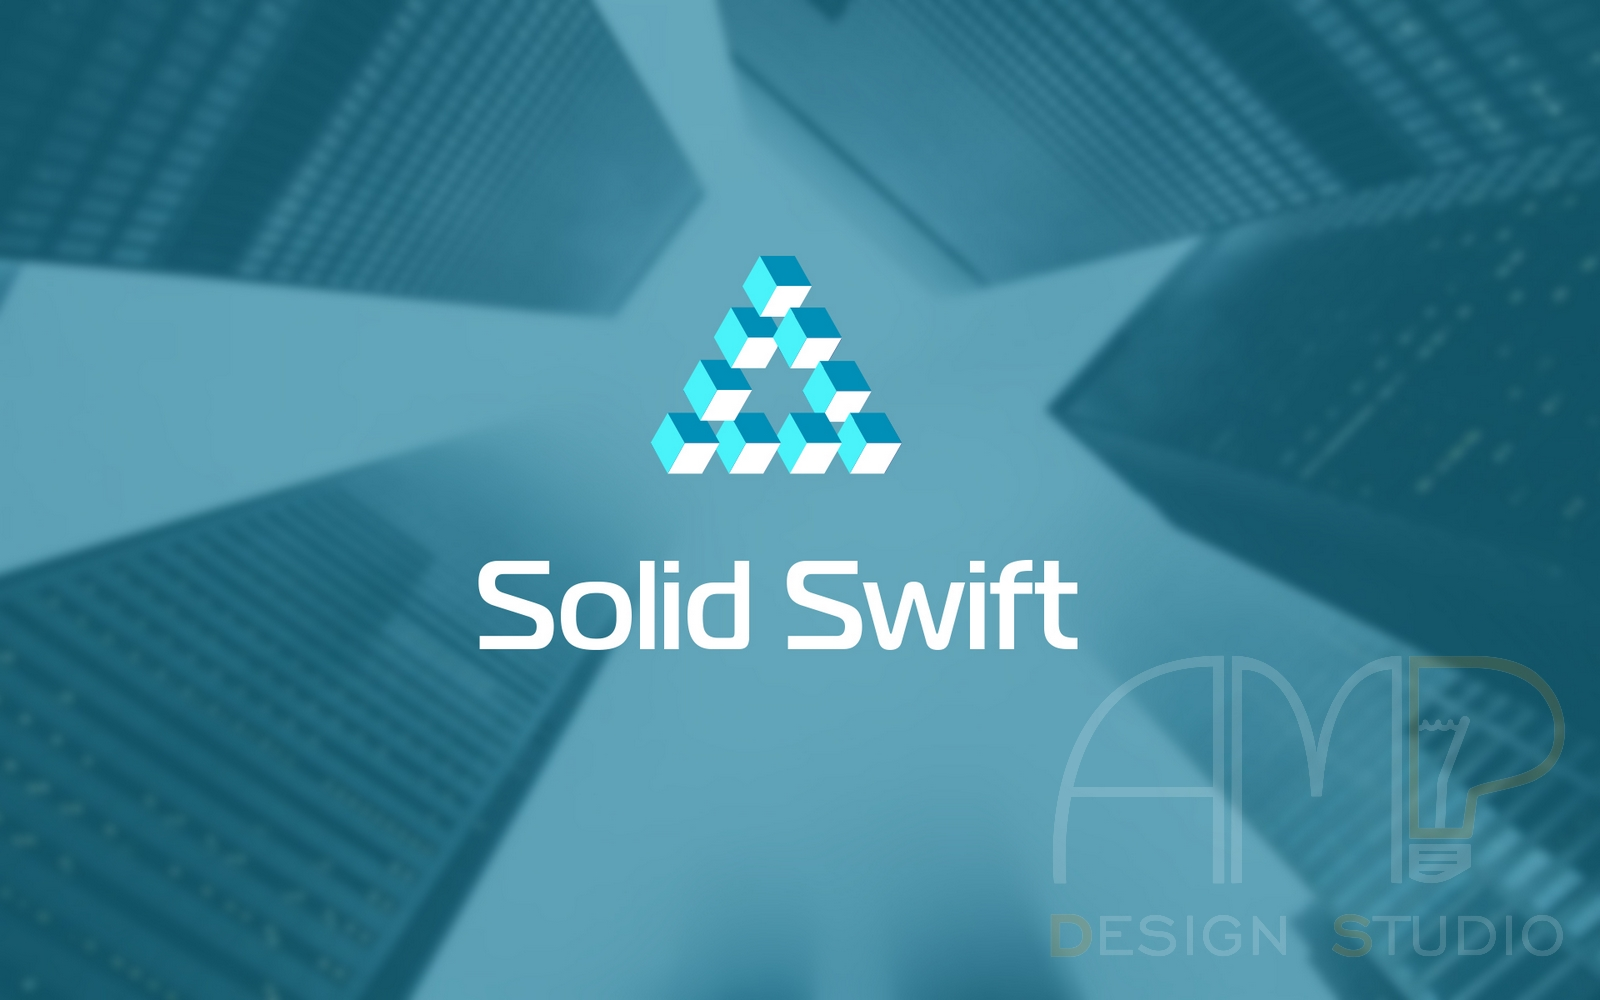 Solid Swift logo 2